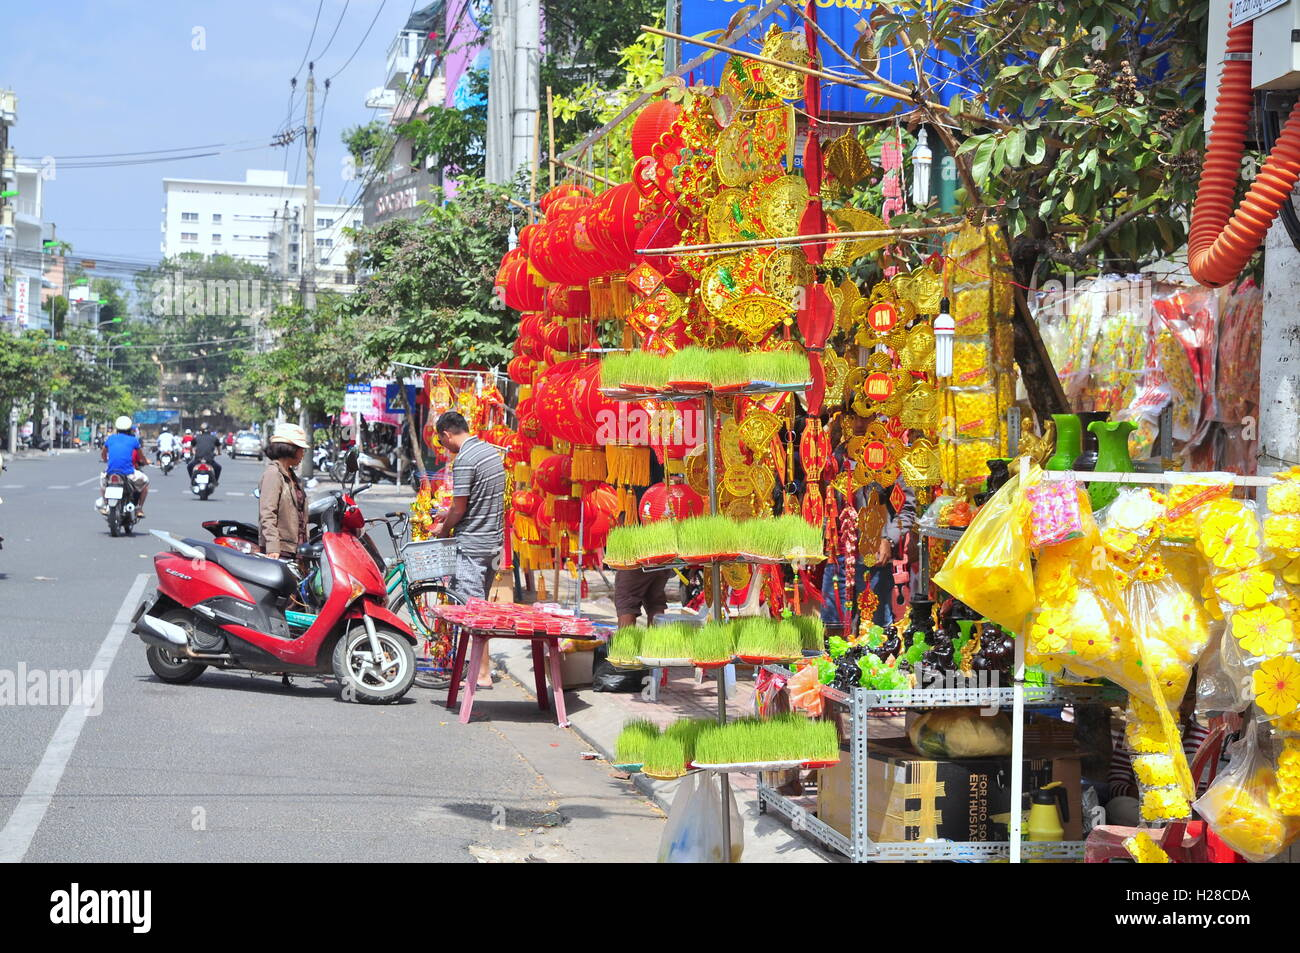 Nha Trang, Vietnam - February 7, 2016: Red lanterns and lucky items are for sale in the lunar new year on the street - Stock Image